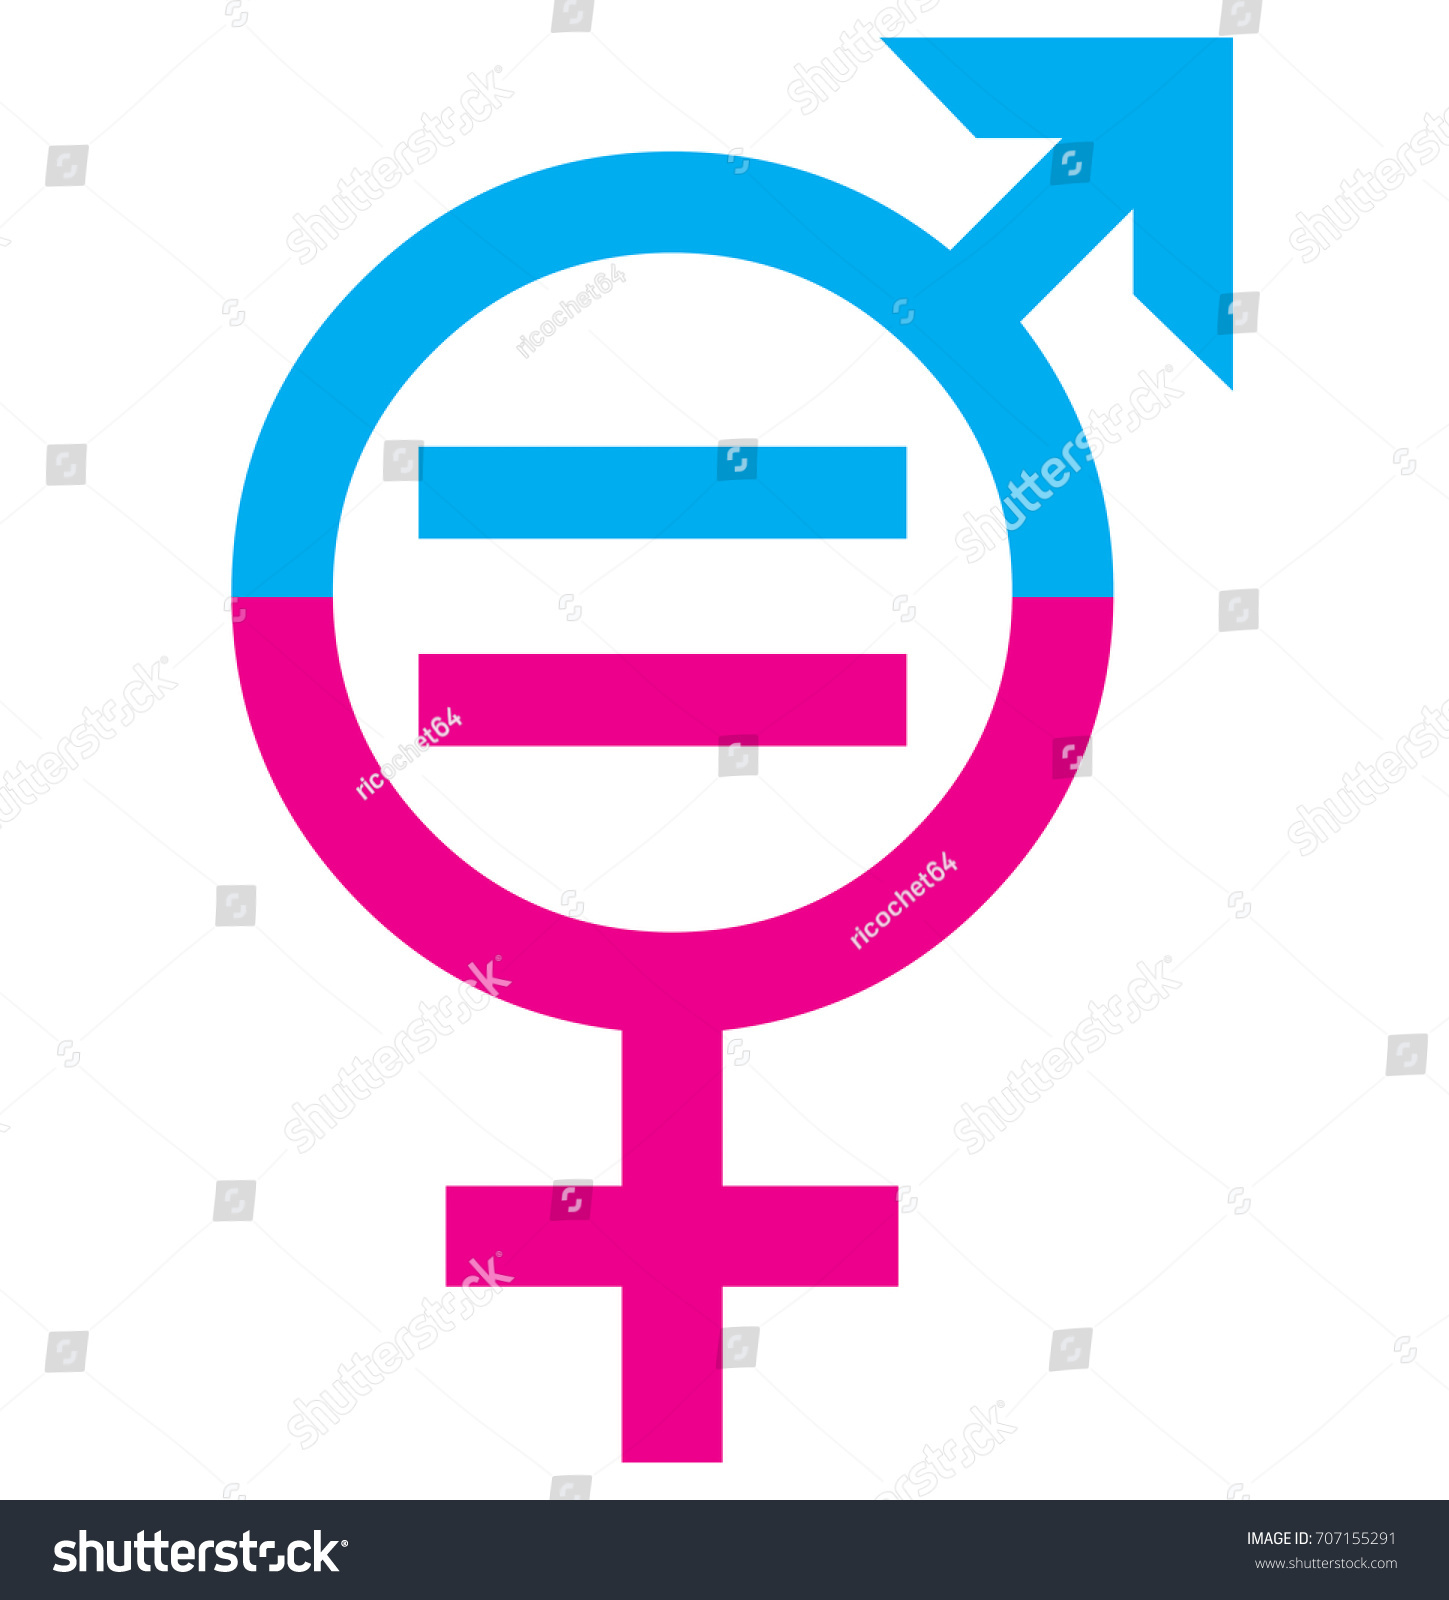 Men Women Sex Equality Sign Concept Stock Illustration 707155291